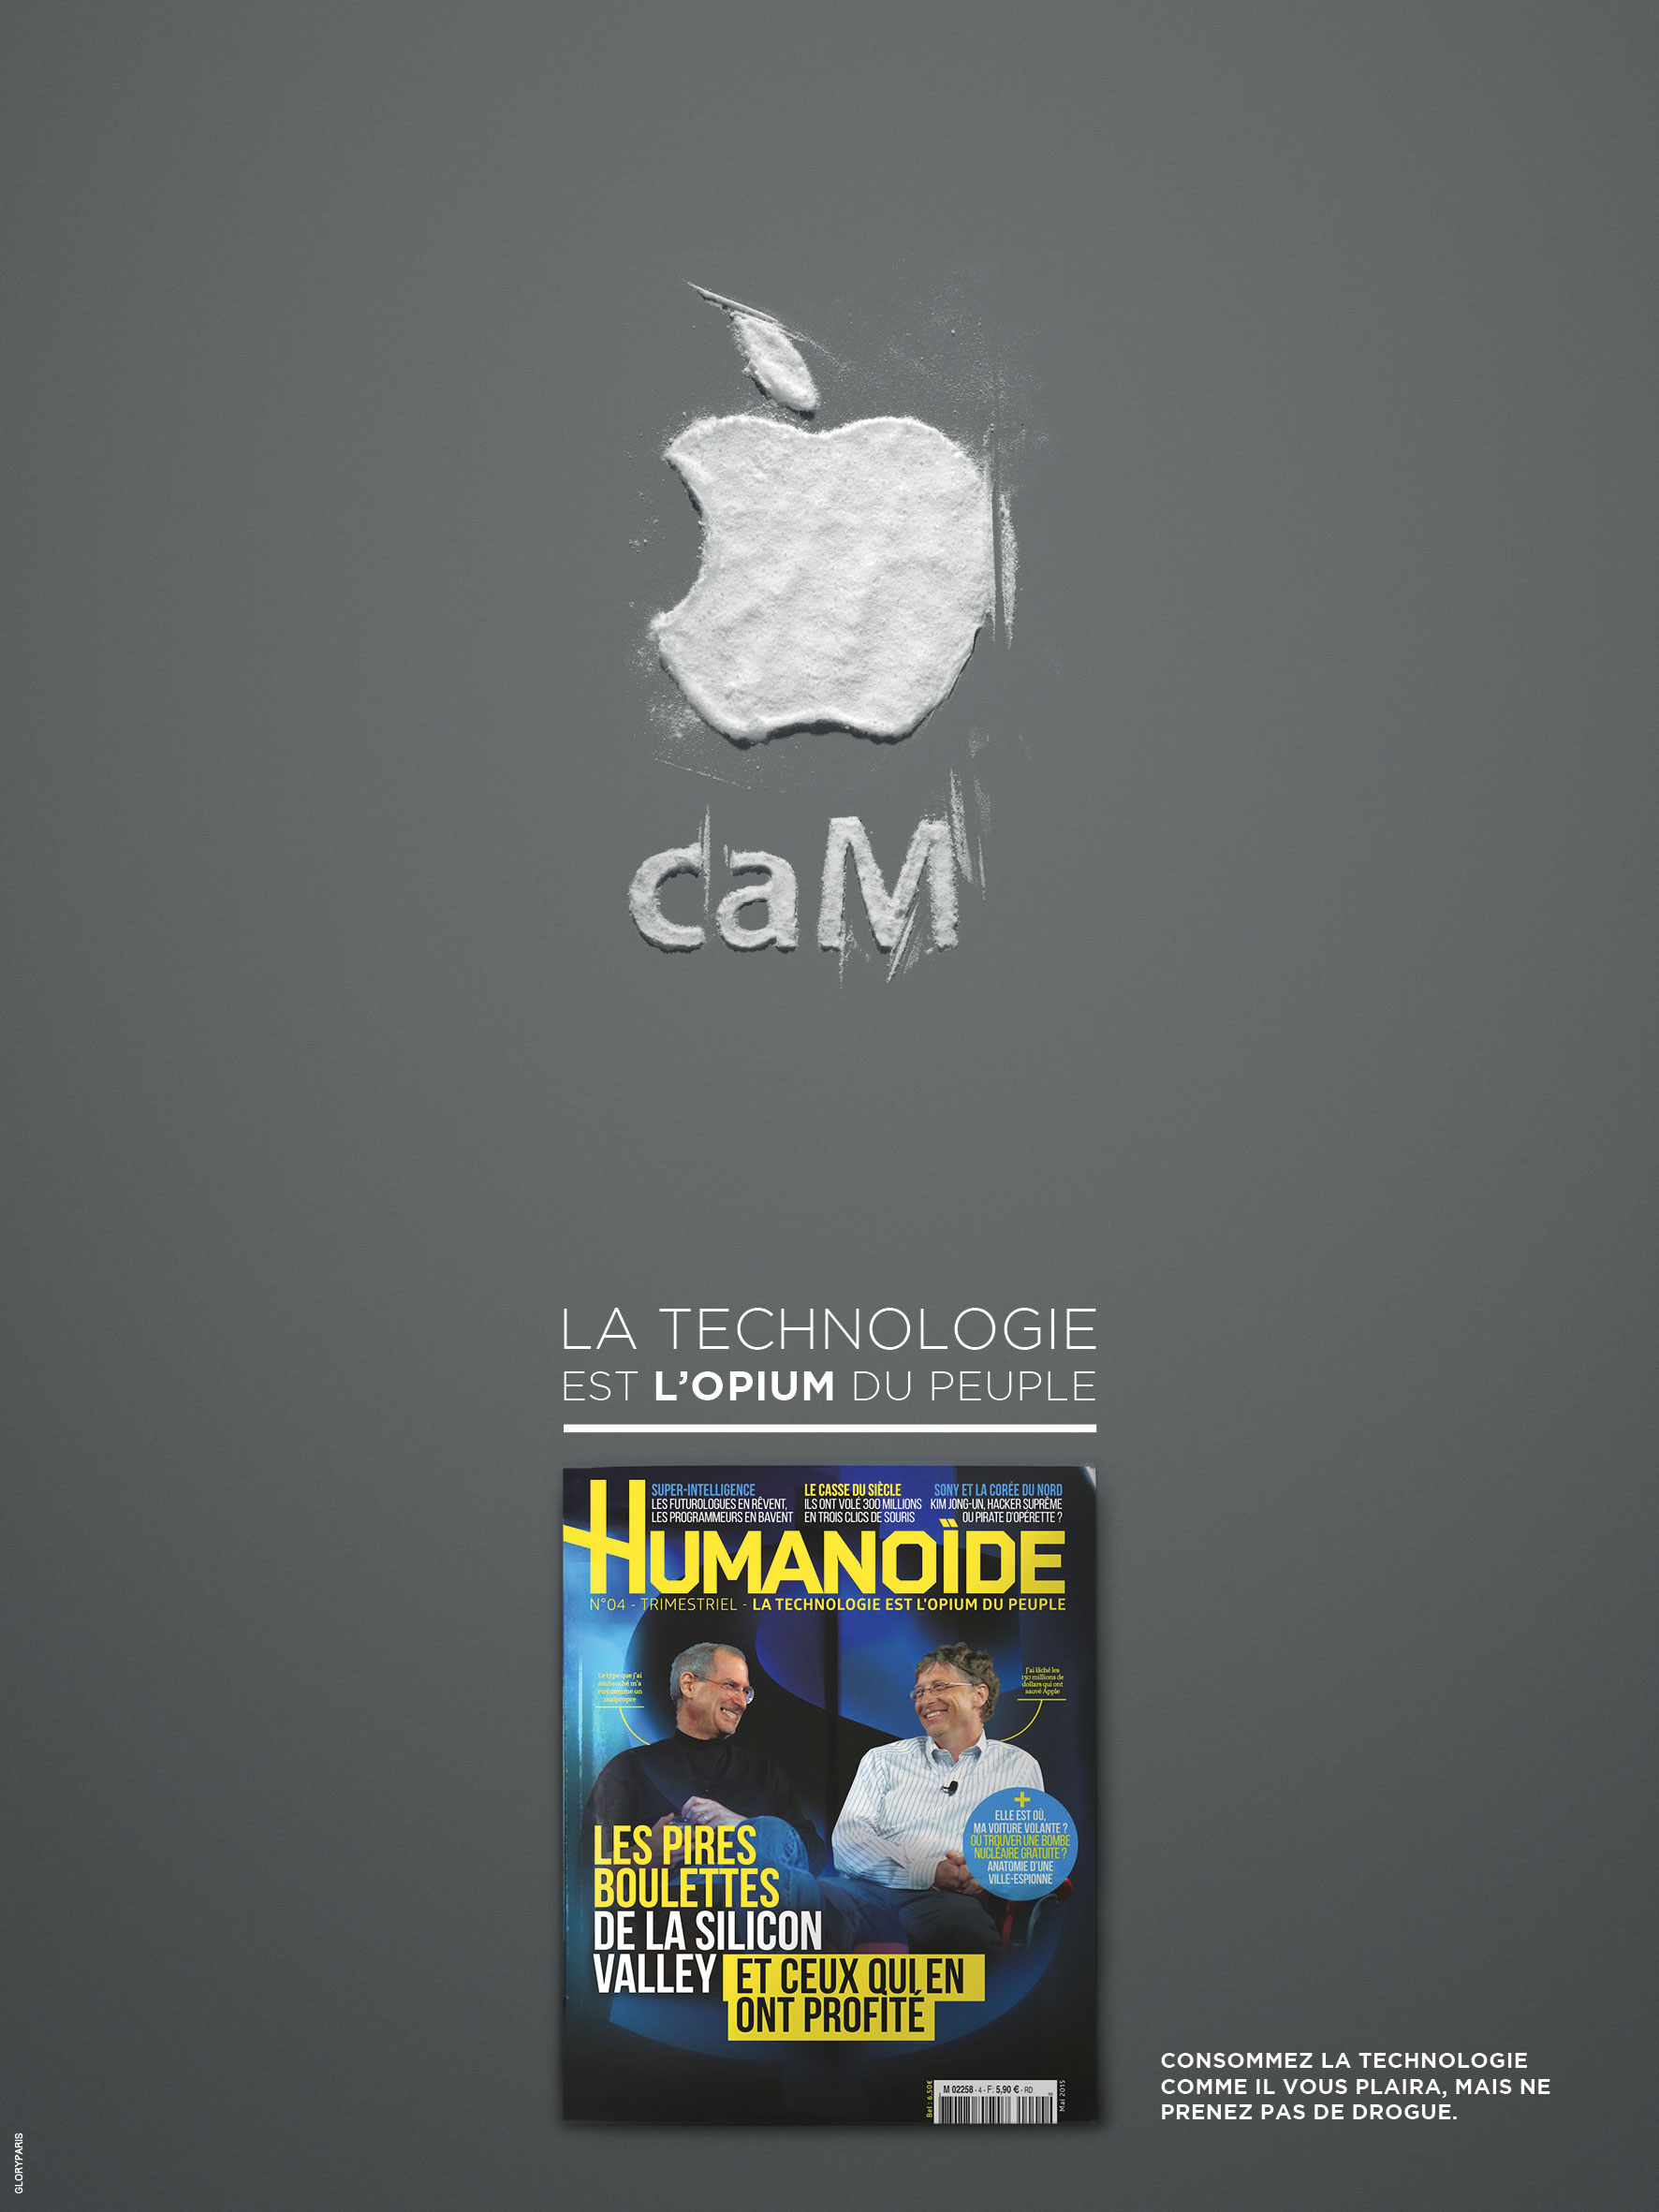 dans-ta-pub-humanoide-print-publicité-affiche-technologie-web-drogue-addiction-digital-5